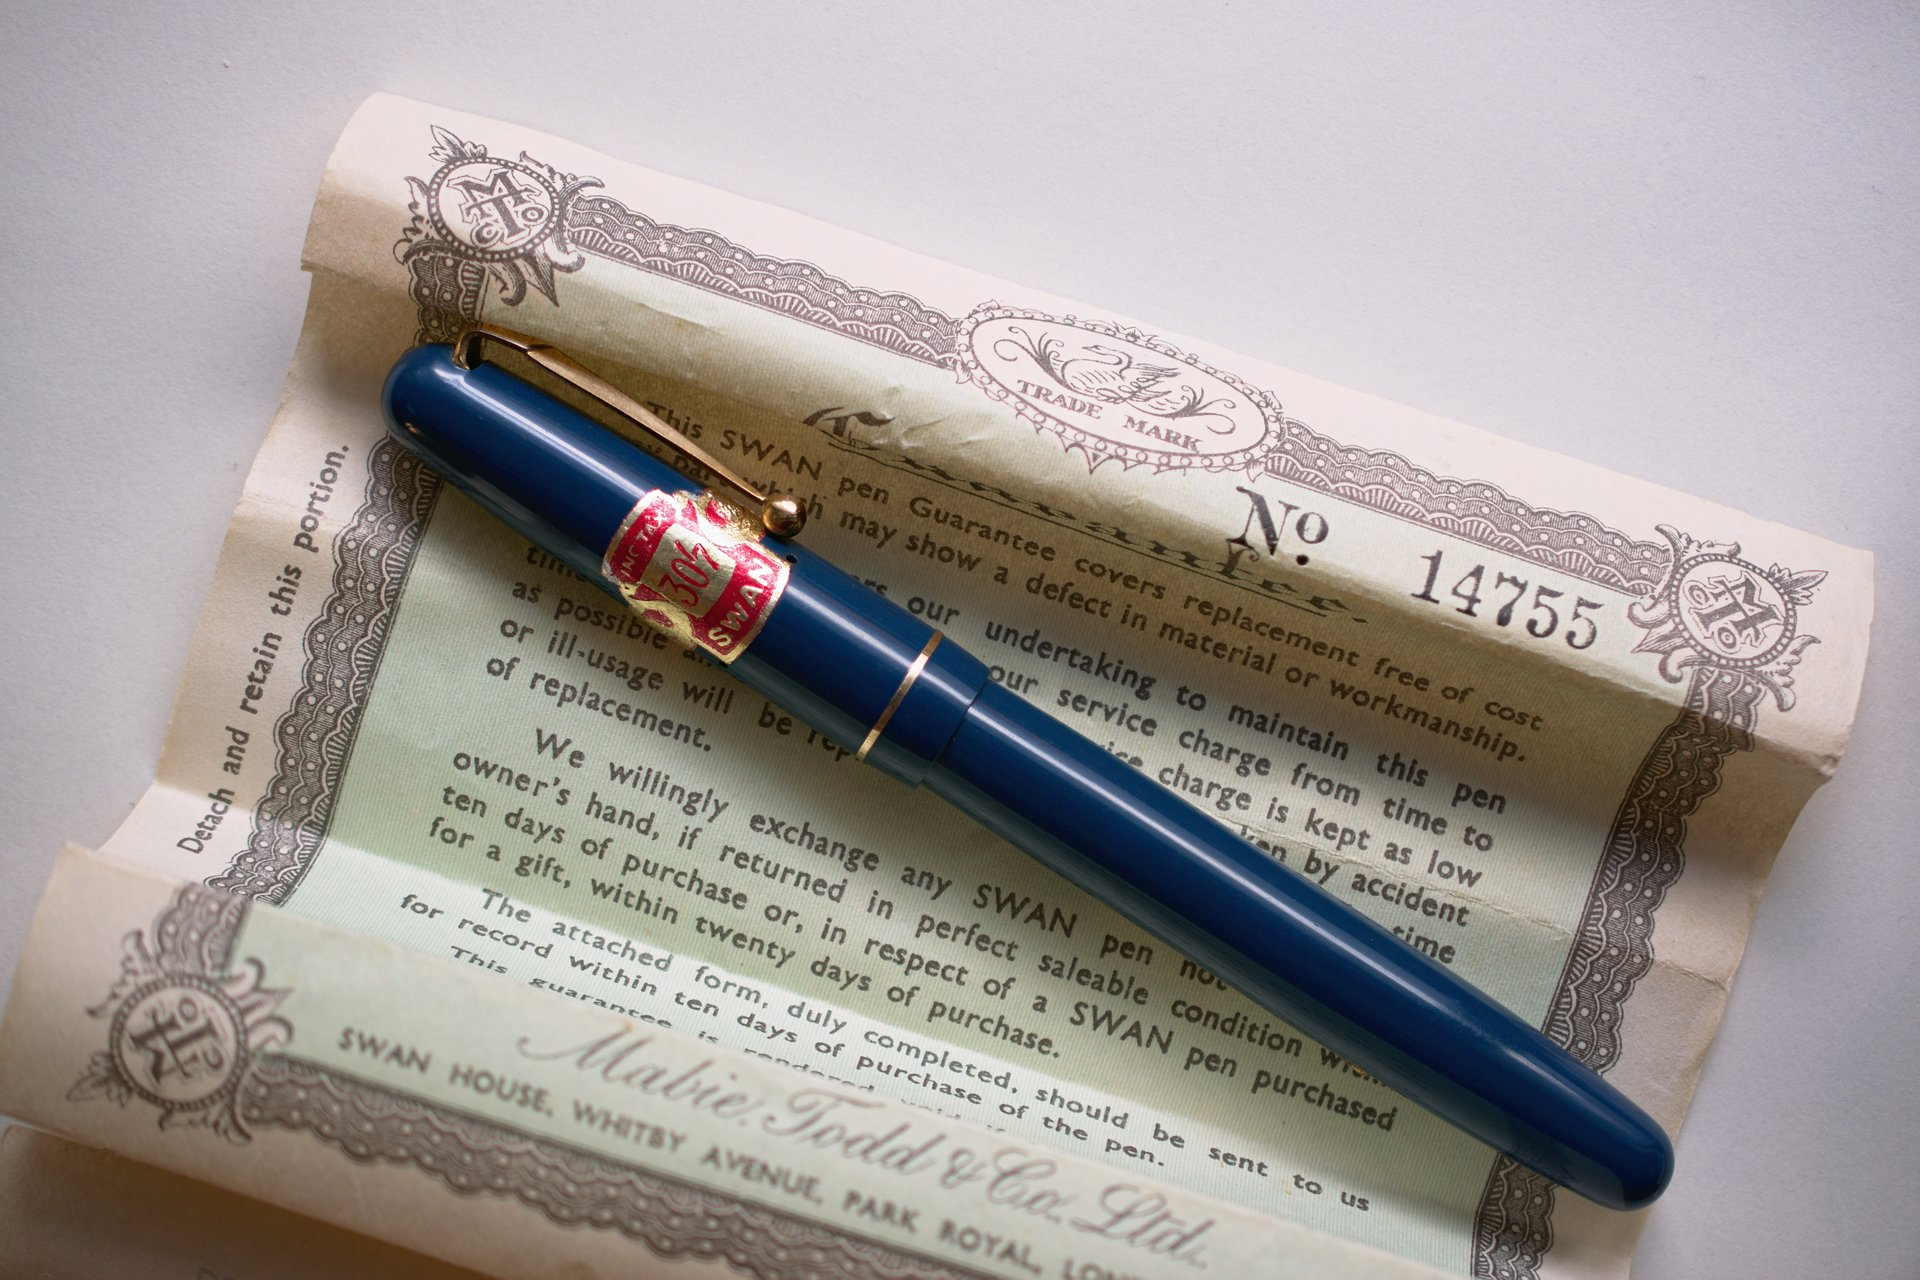 nib close-up